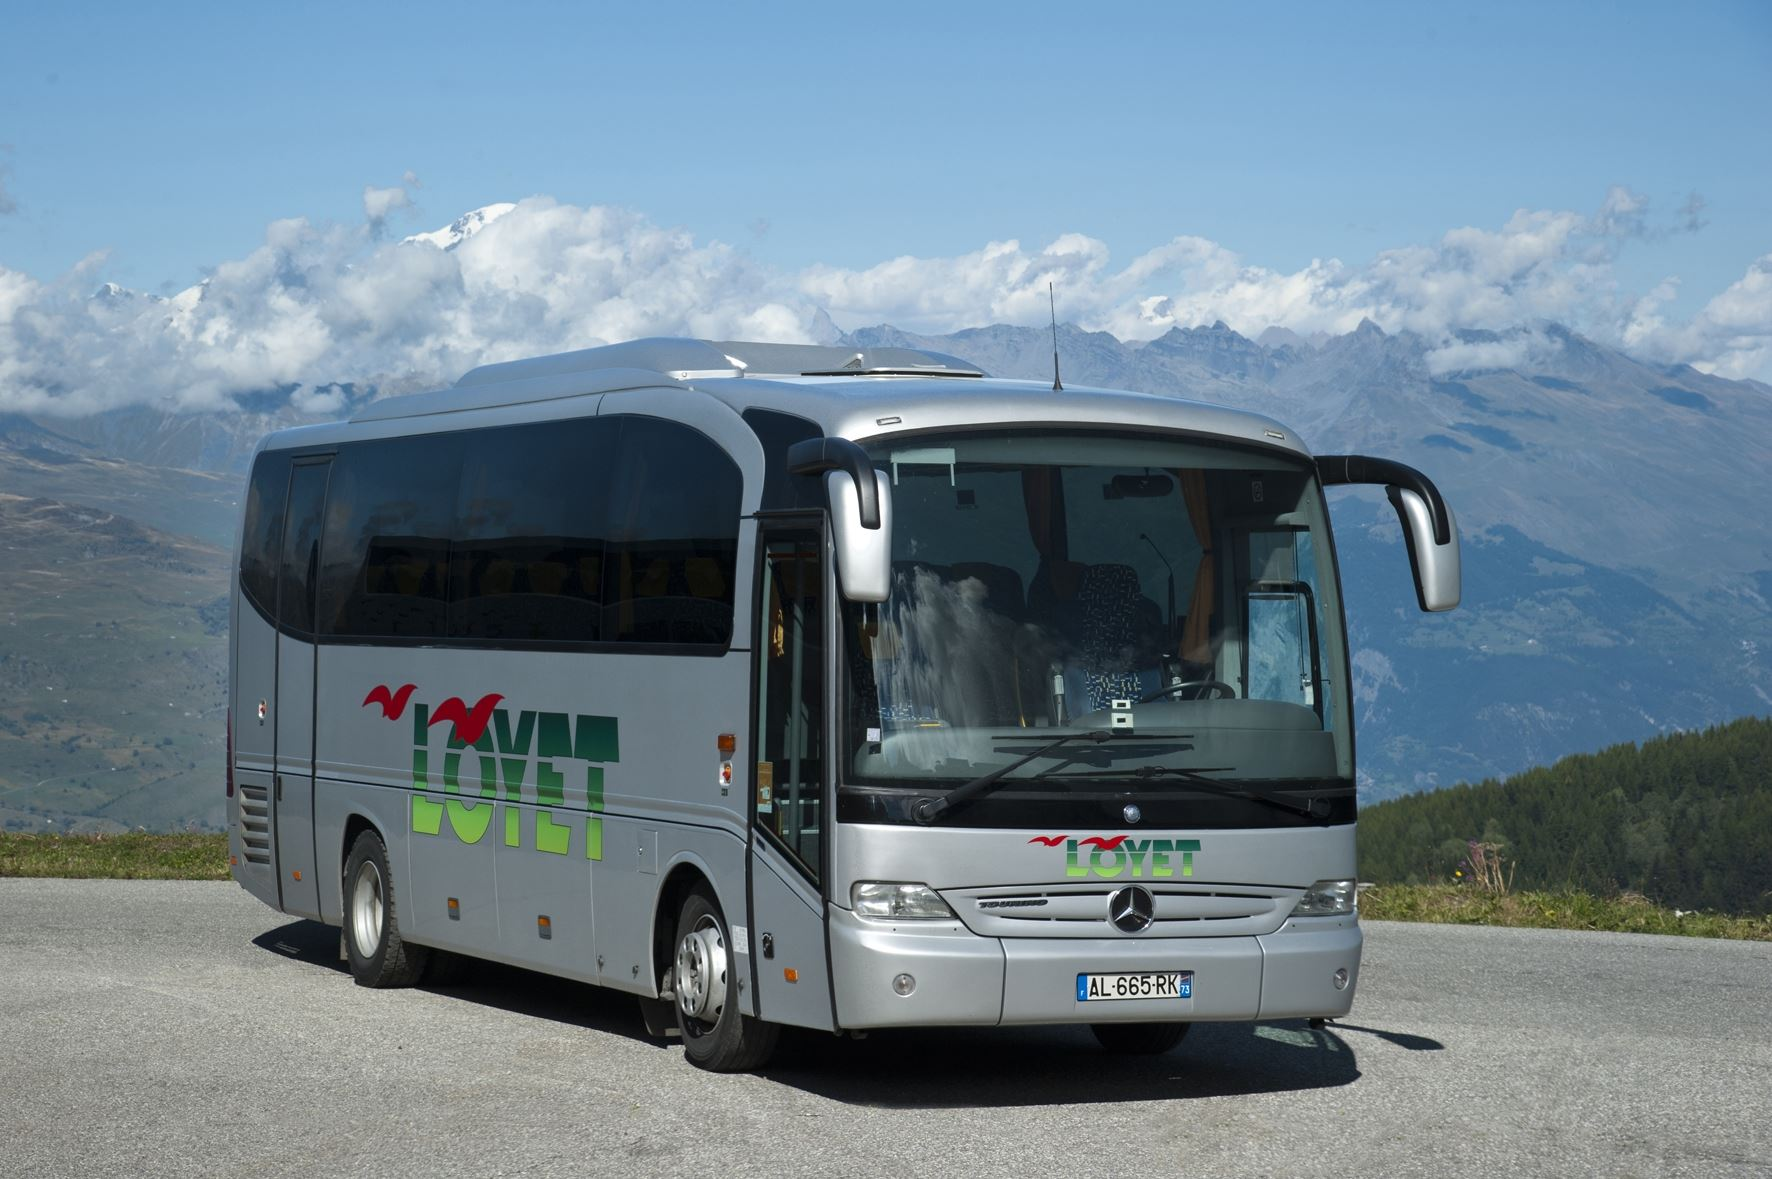 SATURDAY BUS TRANSFER FROM VAL THORENS TO GENEVA AIRPORT